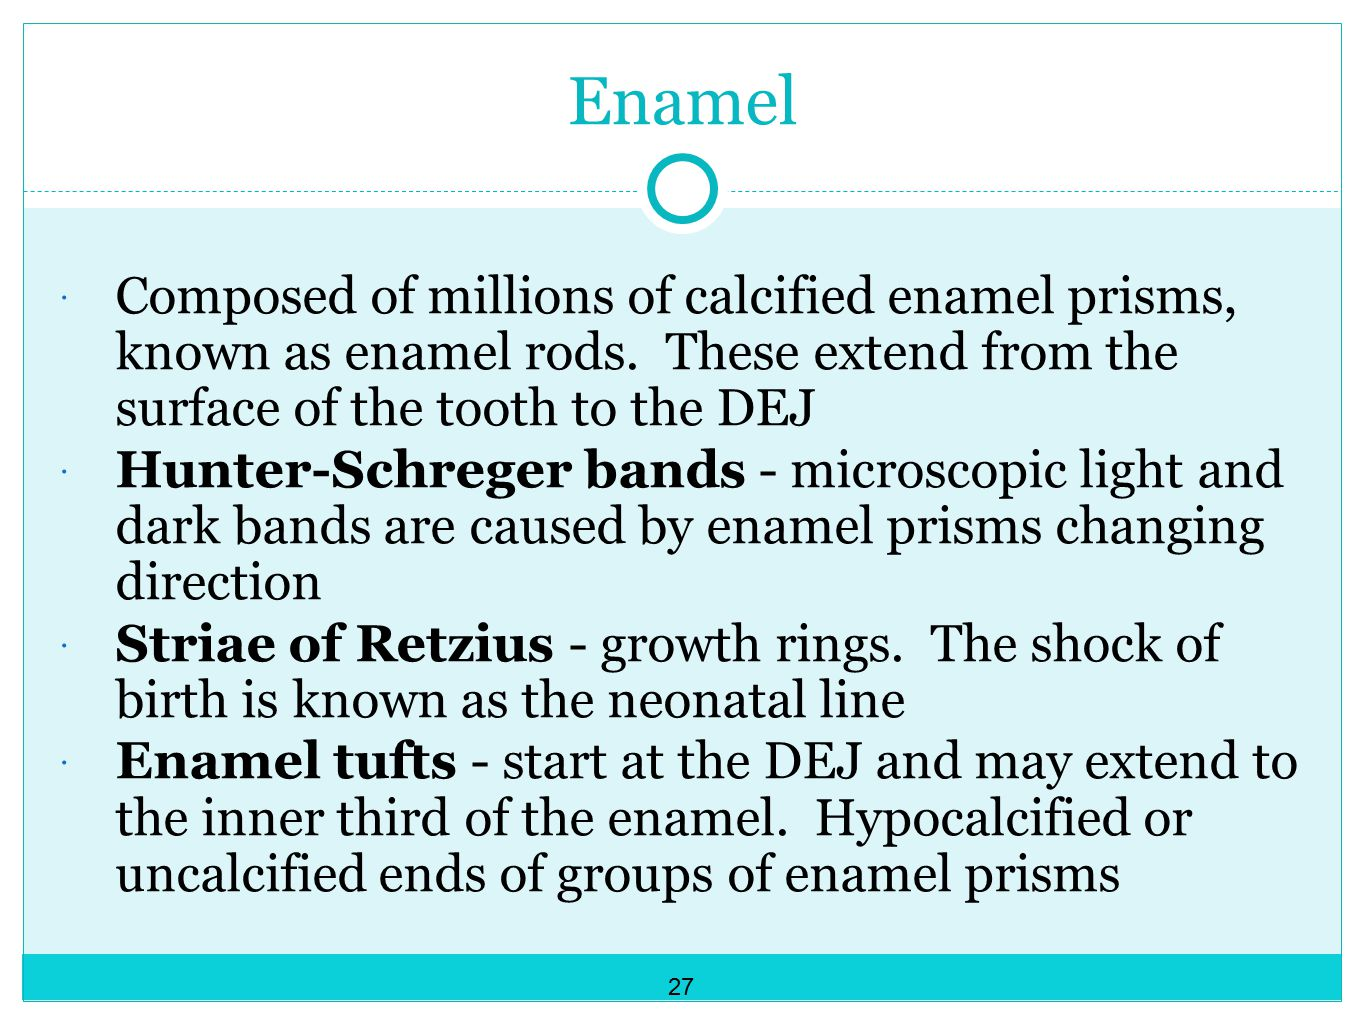 Enamel Composed of millions of calcified enamel prisms, known as enamel rods. These extend from the surface of the tooth to the DEJ.